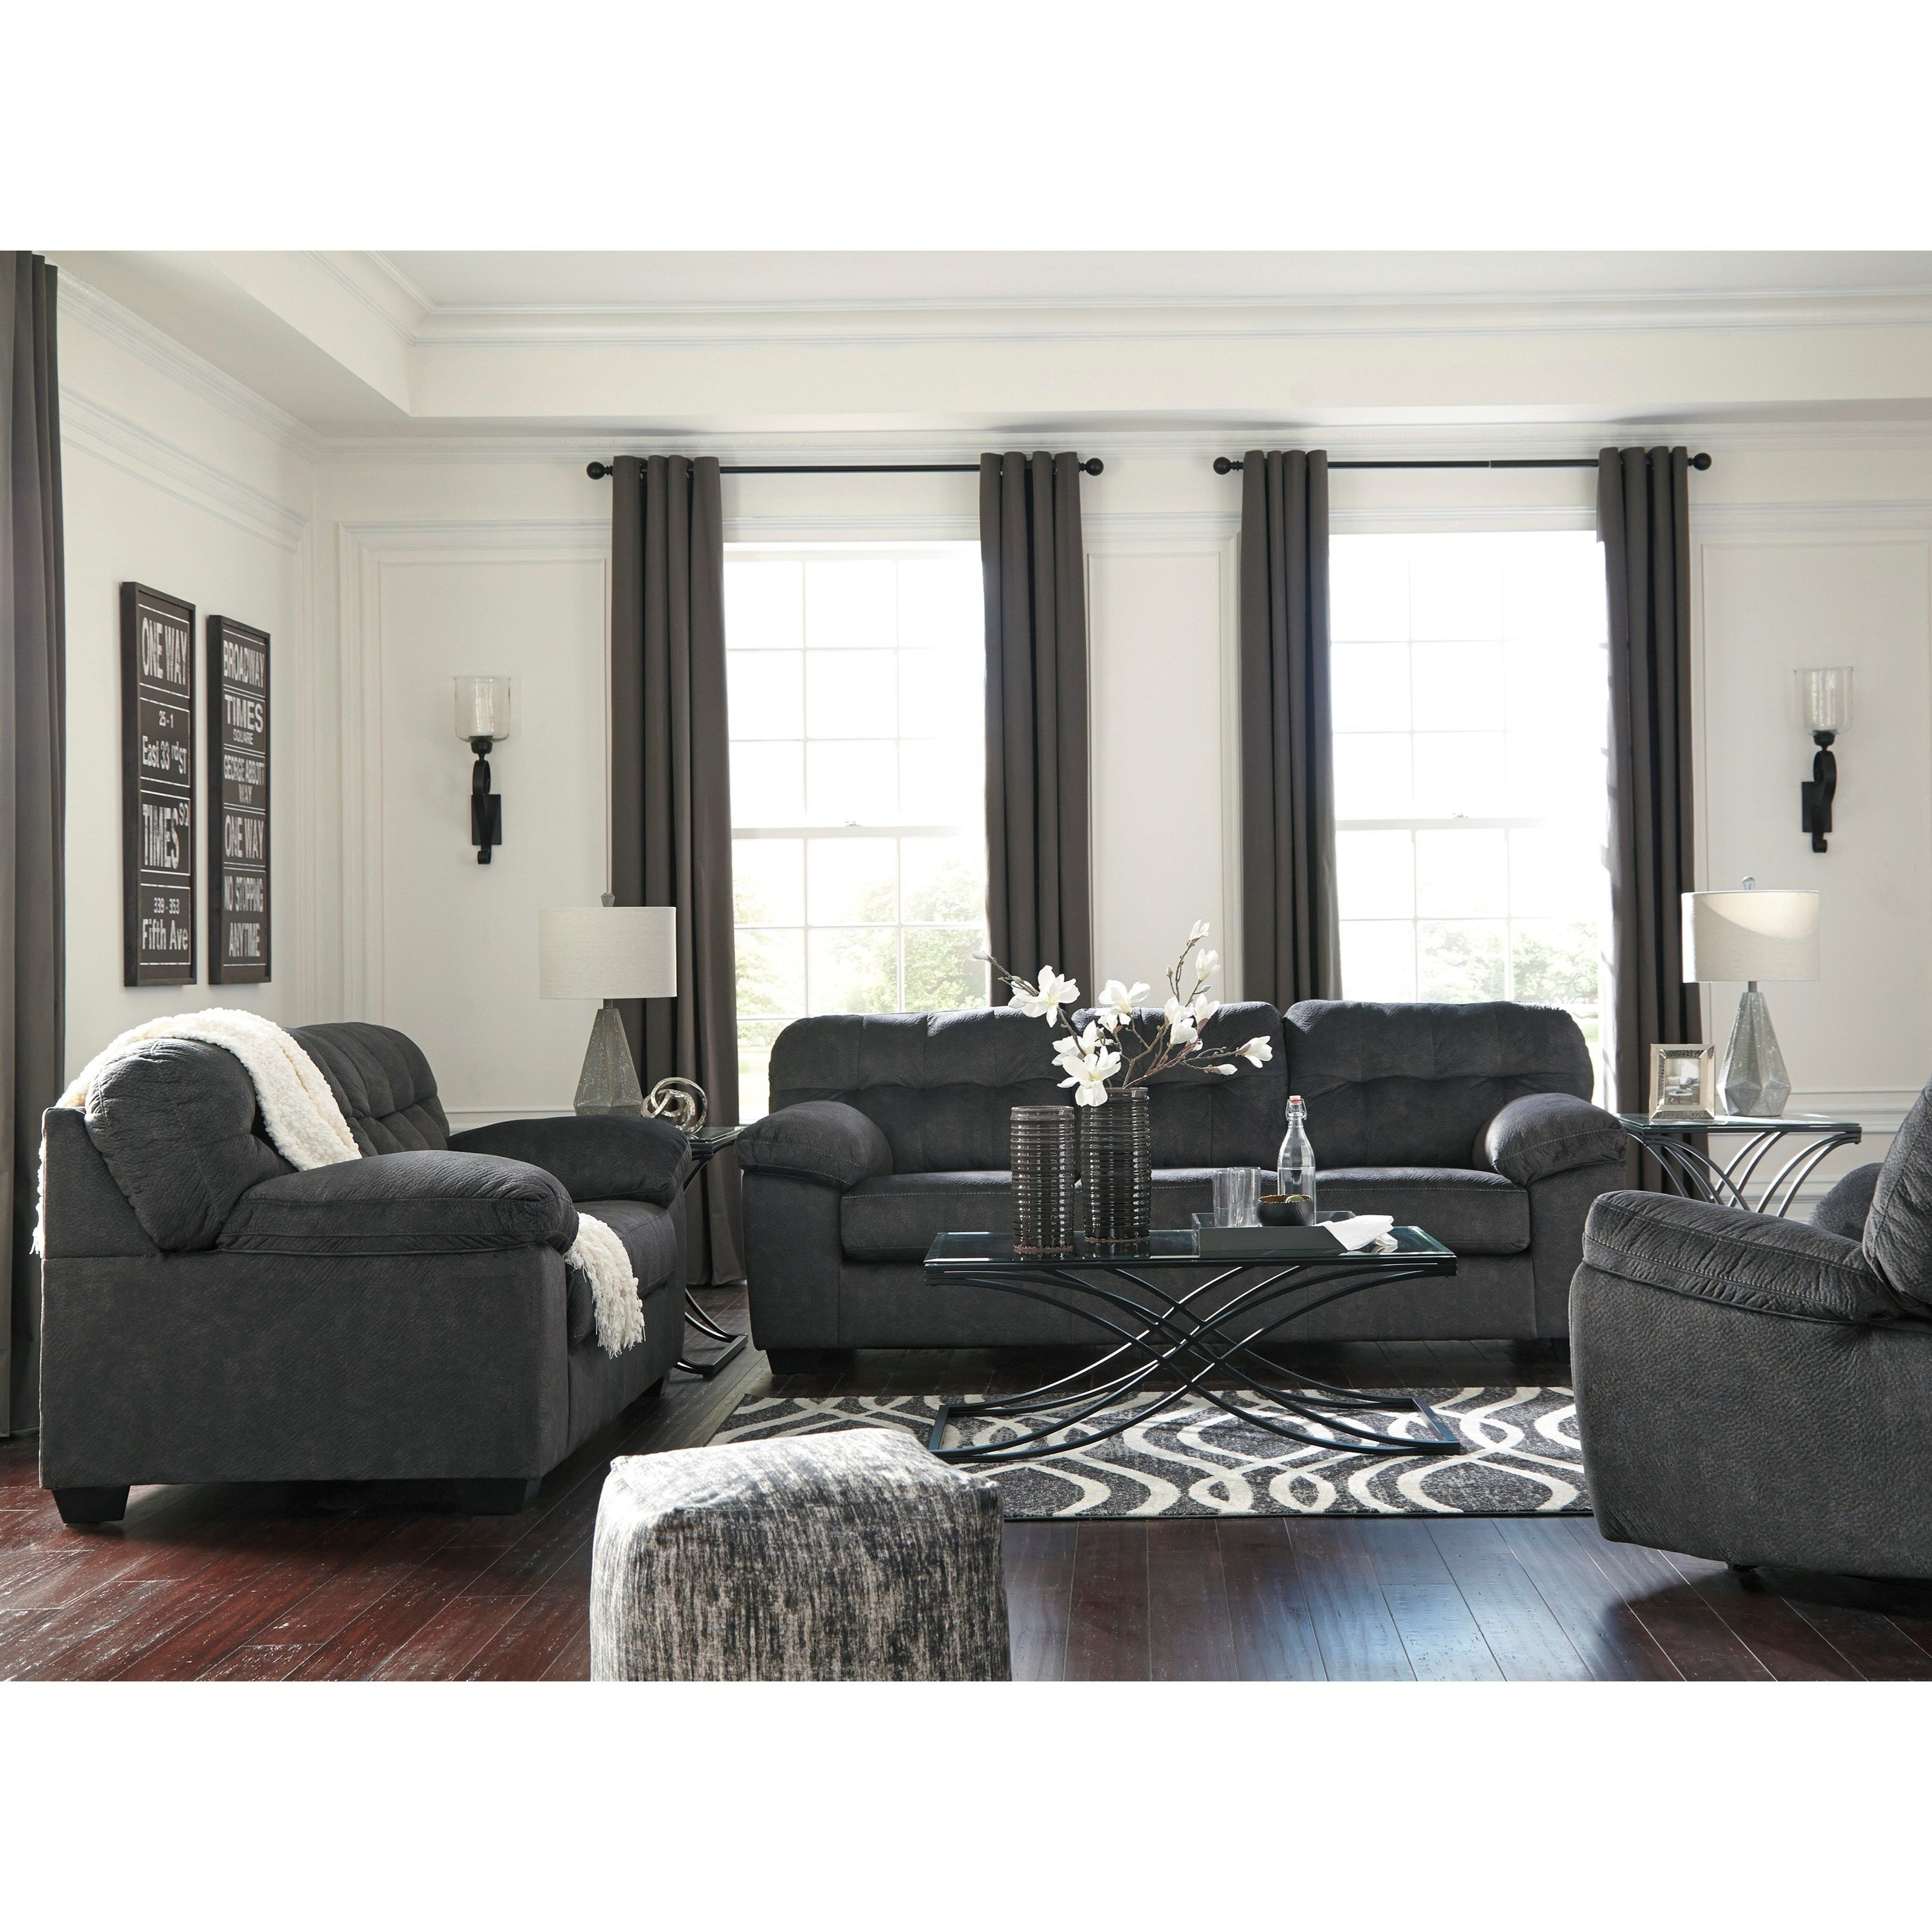 Accrington Stationary Living Room Group by Signature